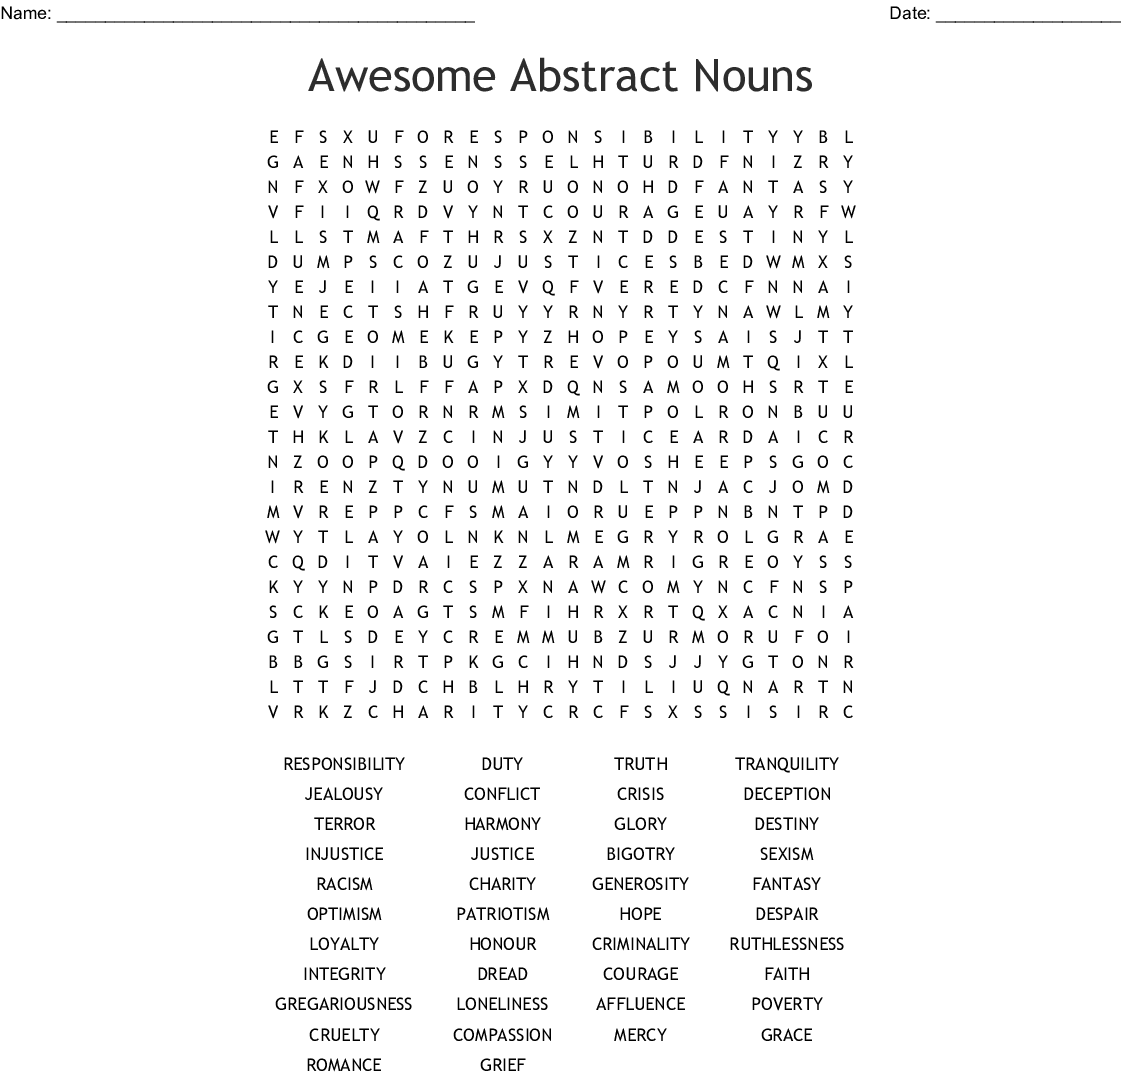 Awesome Abstract Nouns Word Search